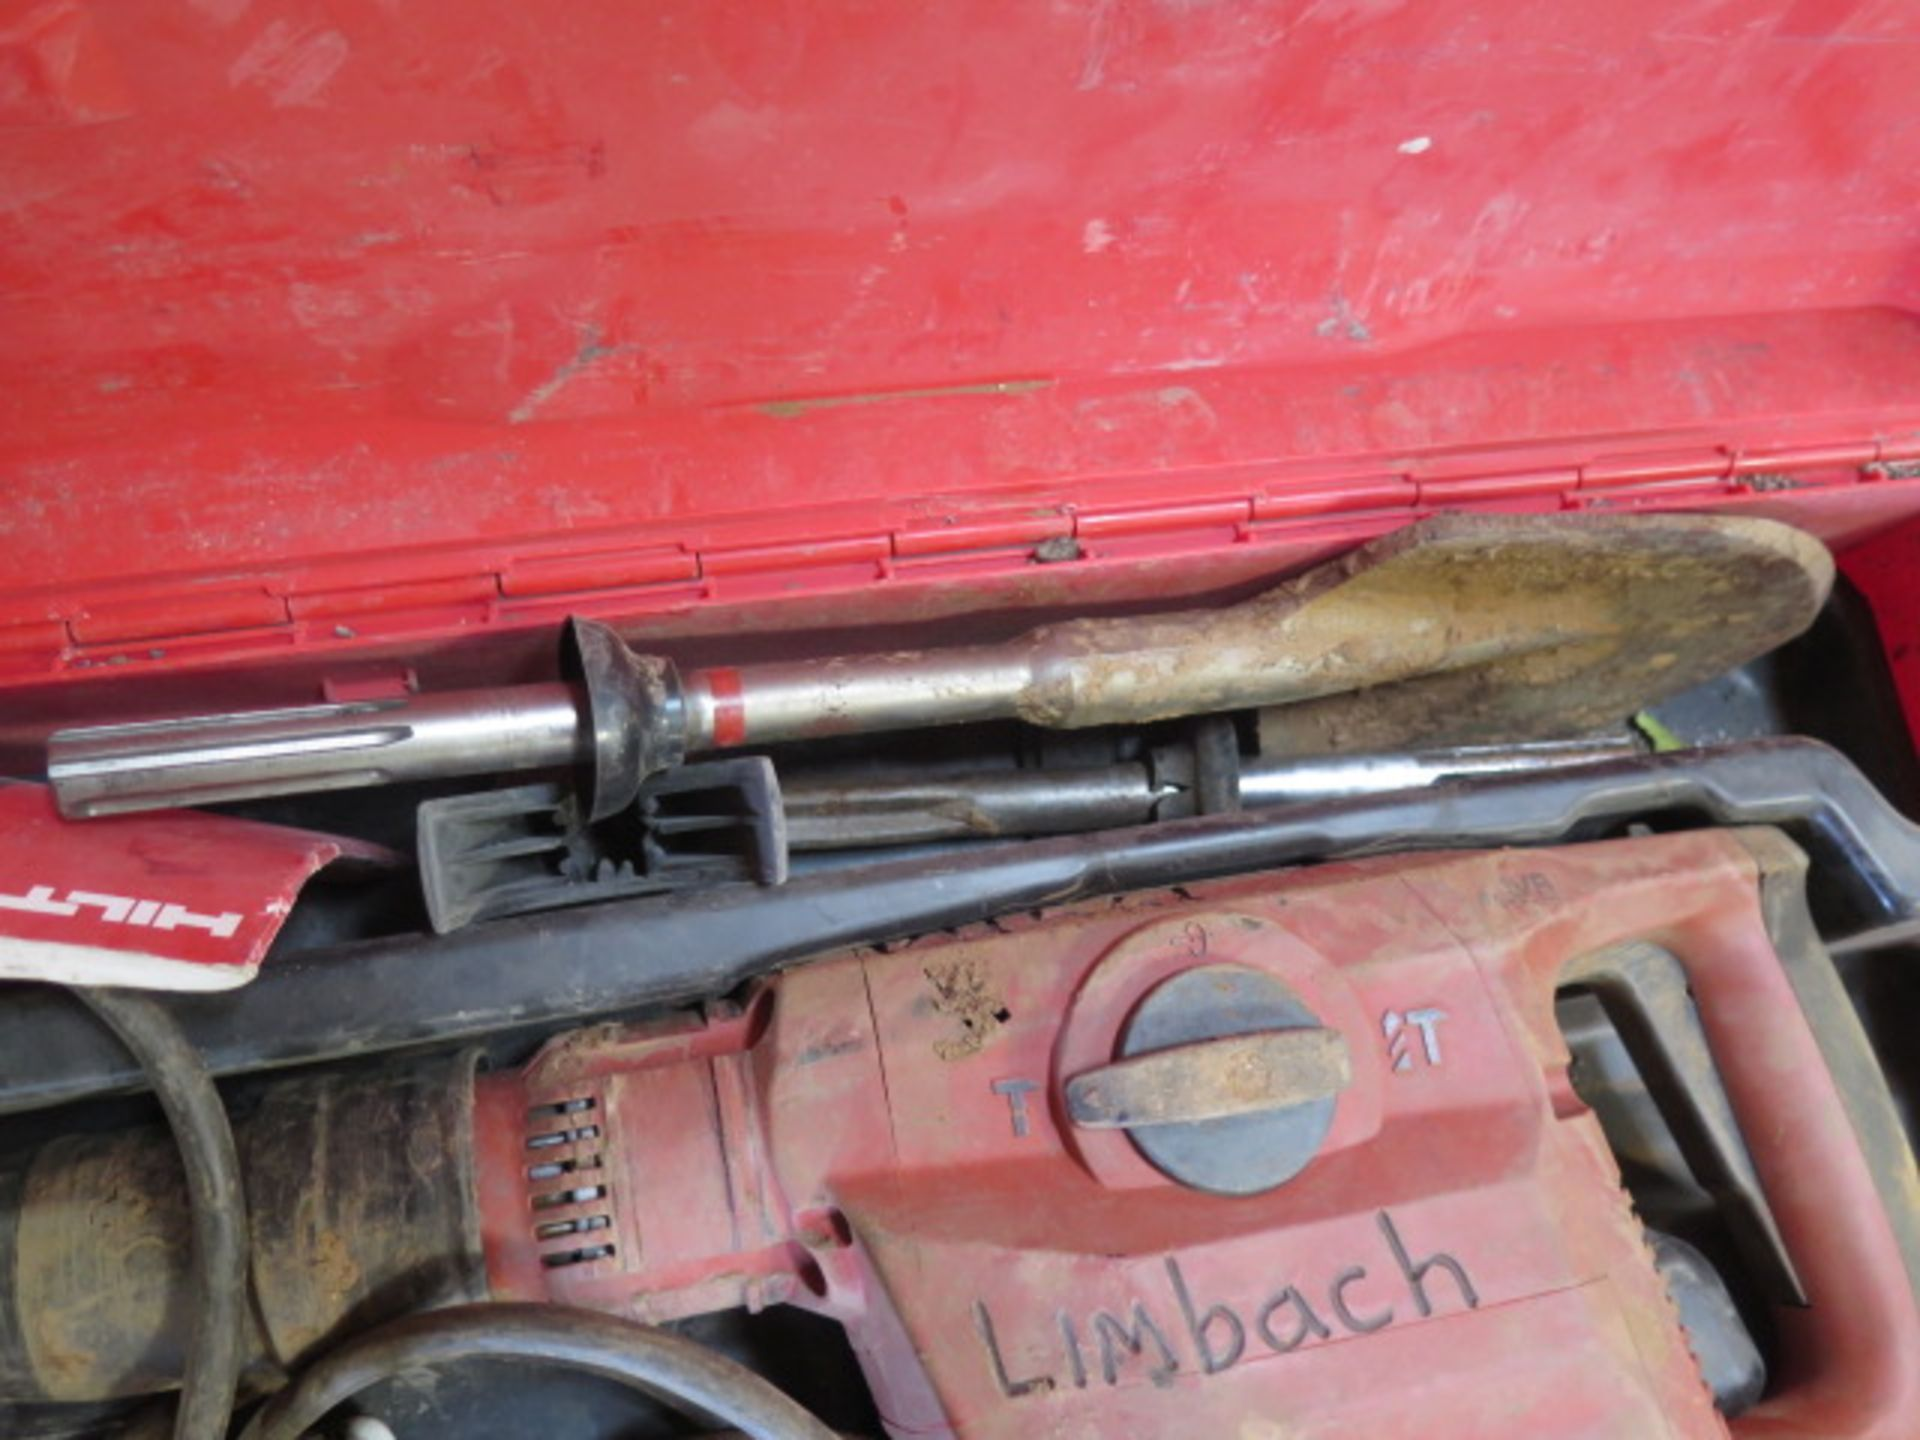 Hilti TE 50-AVR Hammer Drill (SOLD AS-IS - NO WARRANTY) - Image 4 of 6